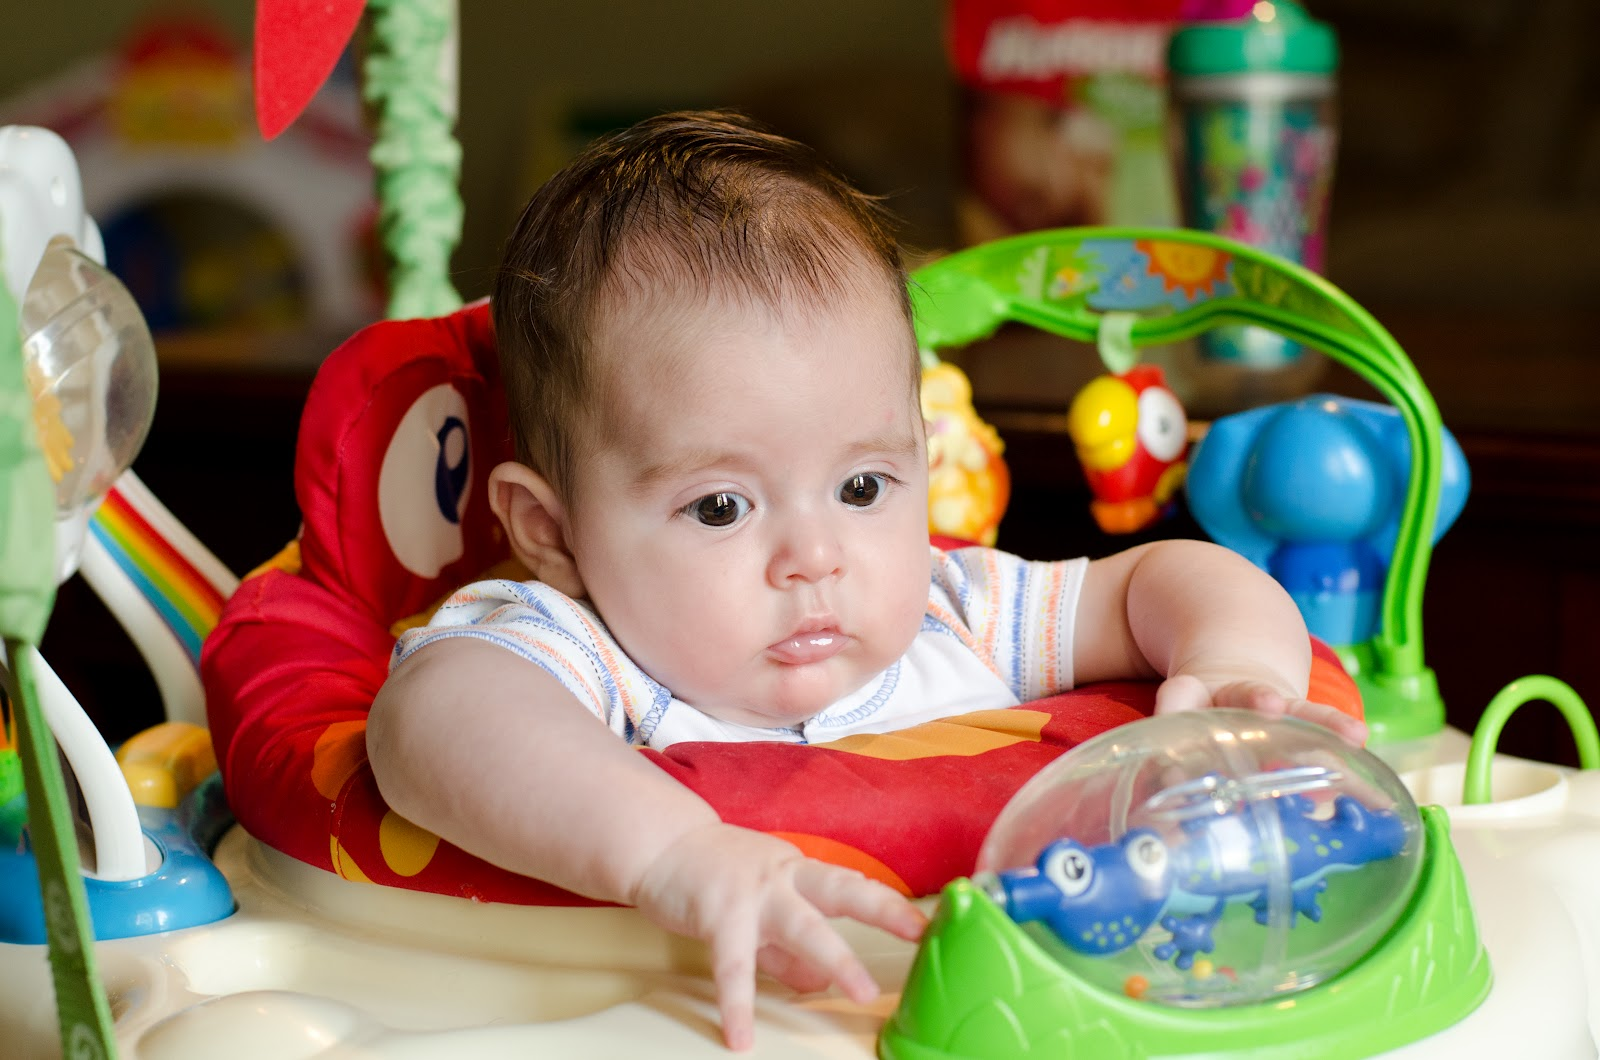 Toys For 4 Month Old Baby : Blessings miracles thoughts in between slow down